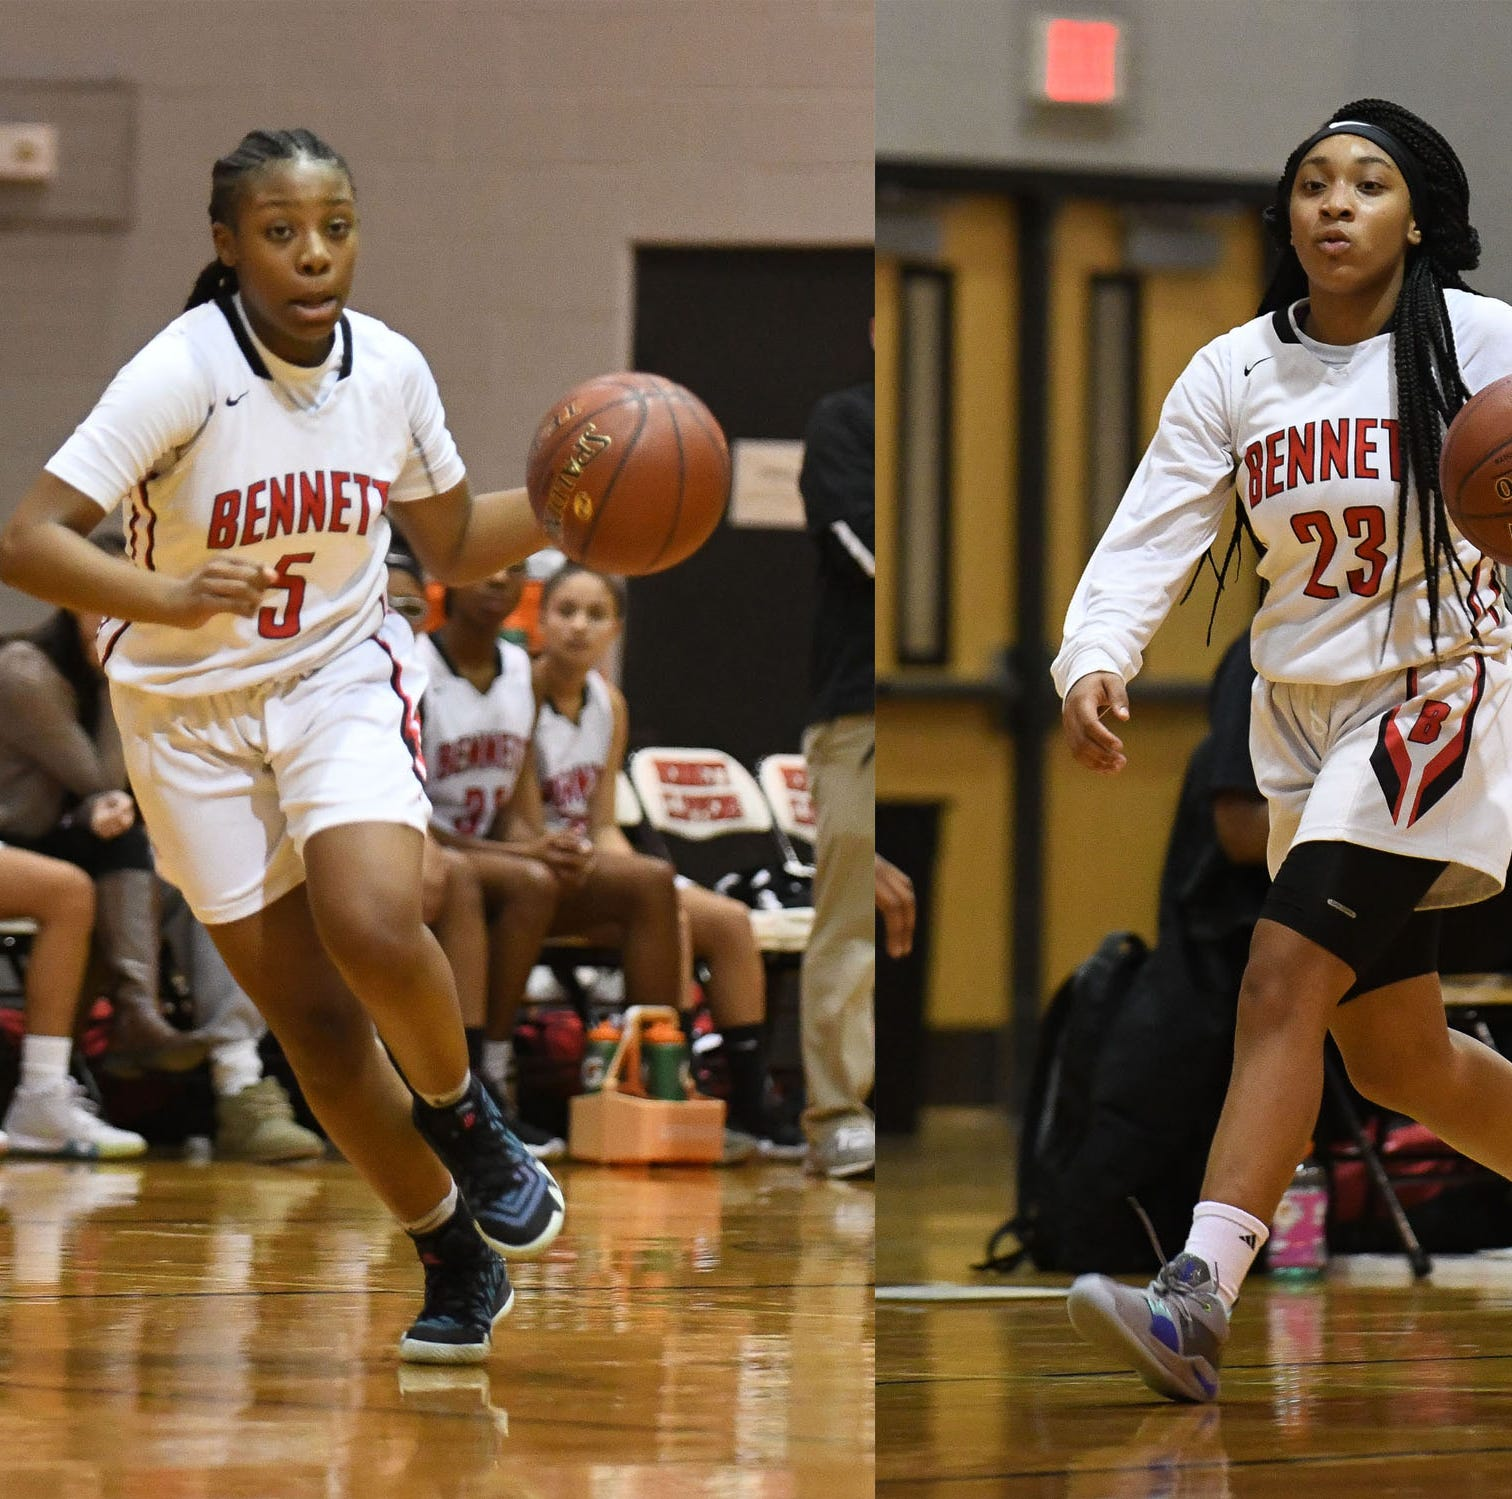 James M. Bennett girls basketball has 'Big 3' running the show